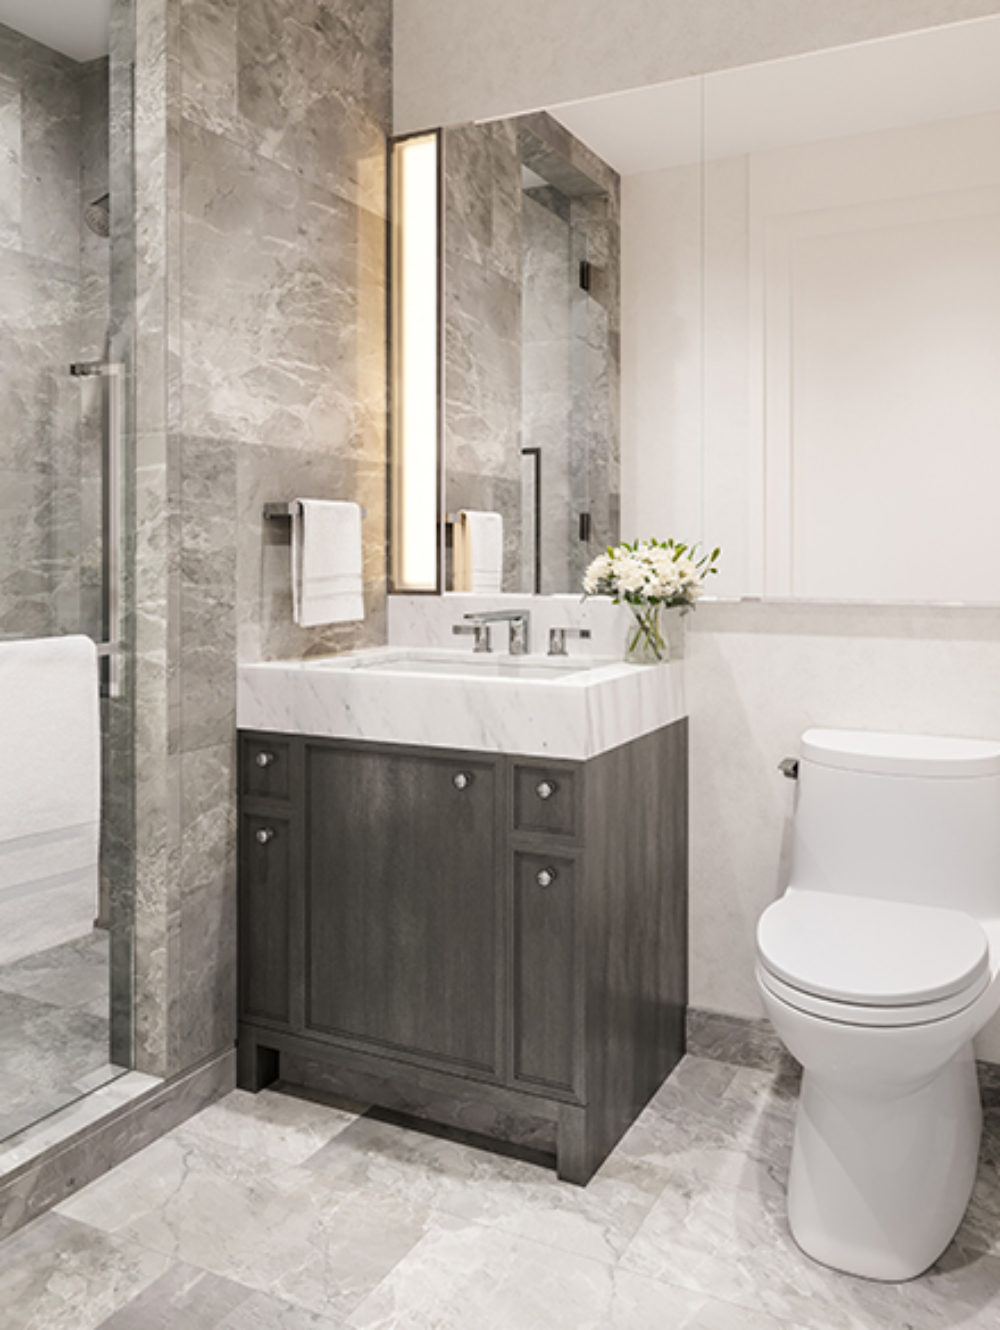 Guest bathroom at Waterline Square in NYC with toilet, single vanity, large mirror and standing shower with glass door.